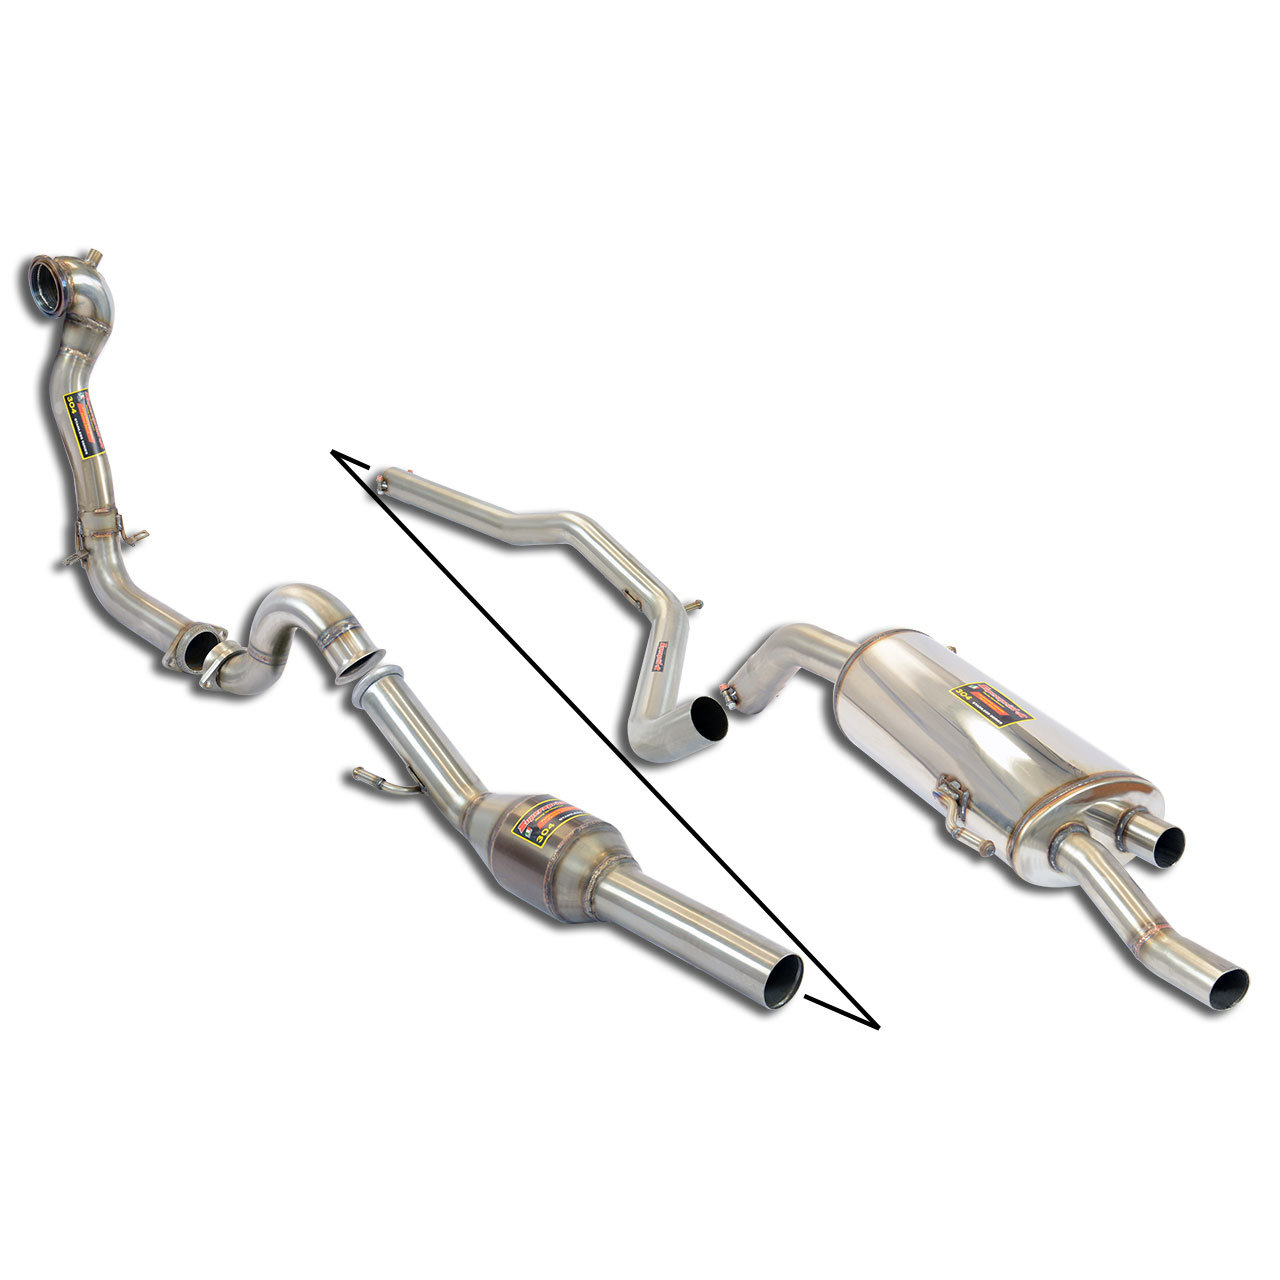 Showthread together with 63049 Ford 427 Sohc Hemi further Ford Thunderbird Convertible Top Repair And Adjustment Foldout P hlet 1957 in addition Vw Wiring Diagram Amazing Collections additionally Cma81 Cmo117 SearchCatalytic Converter. on porsche exhaust